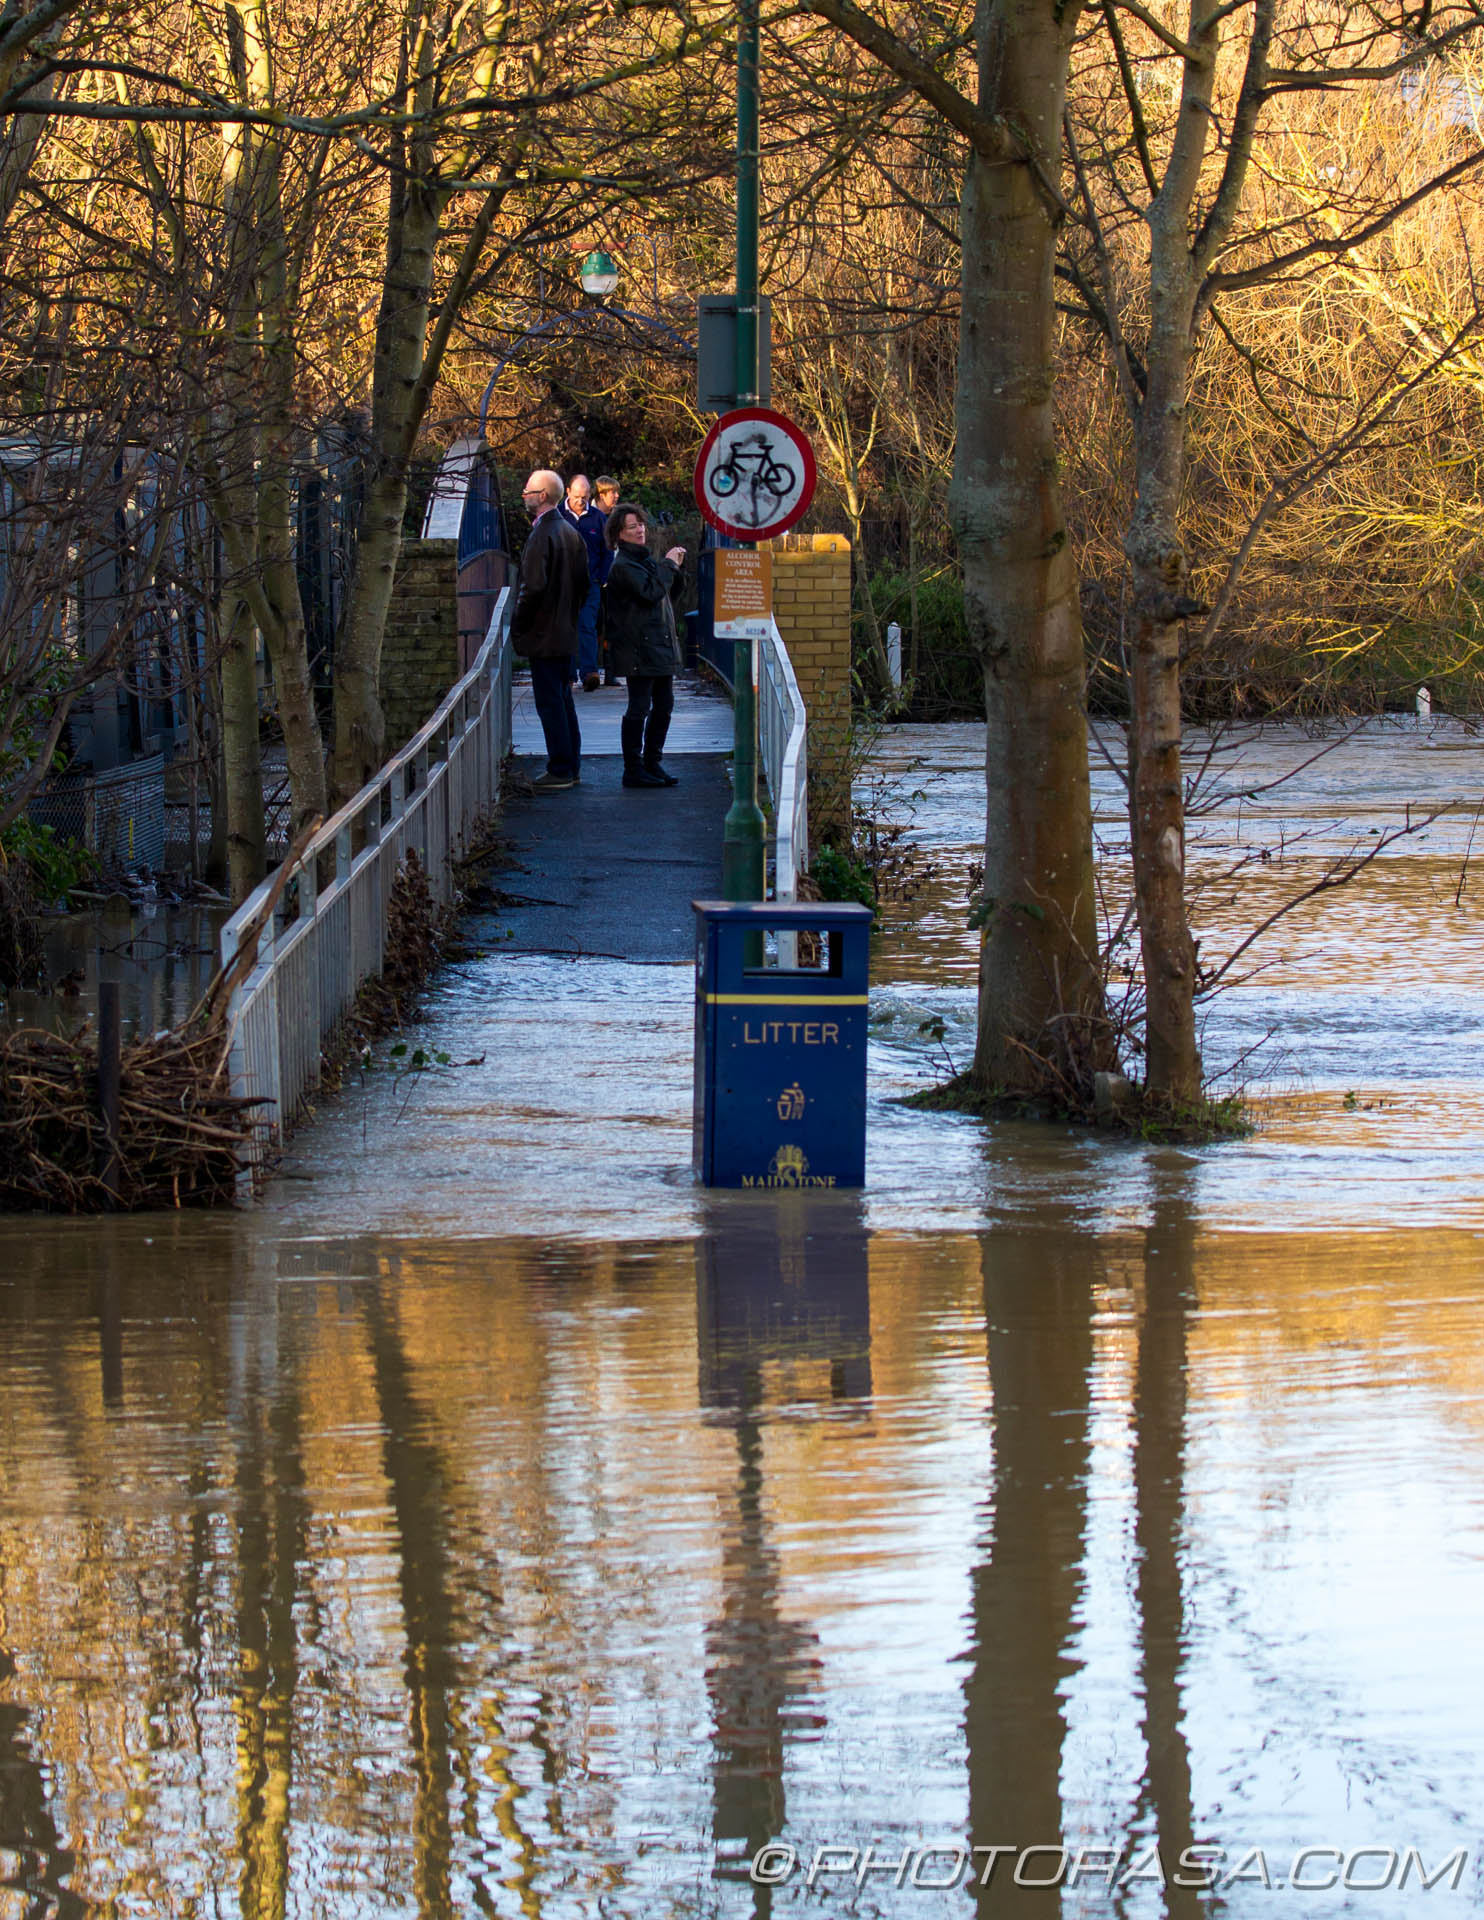 http://photorasa.com/wet-xmas-maidstone-river-medway-floods-town-centre/people-observing-the-flooded-river-on-tovil-footbridge/